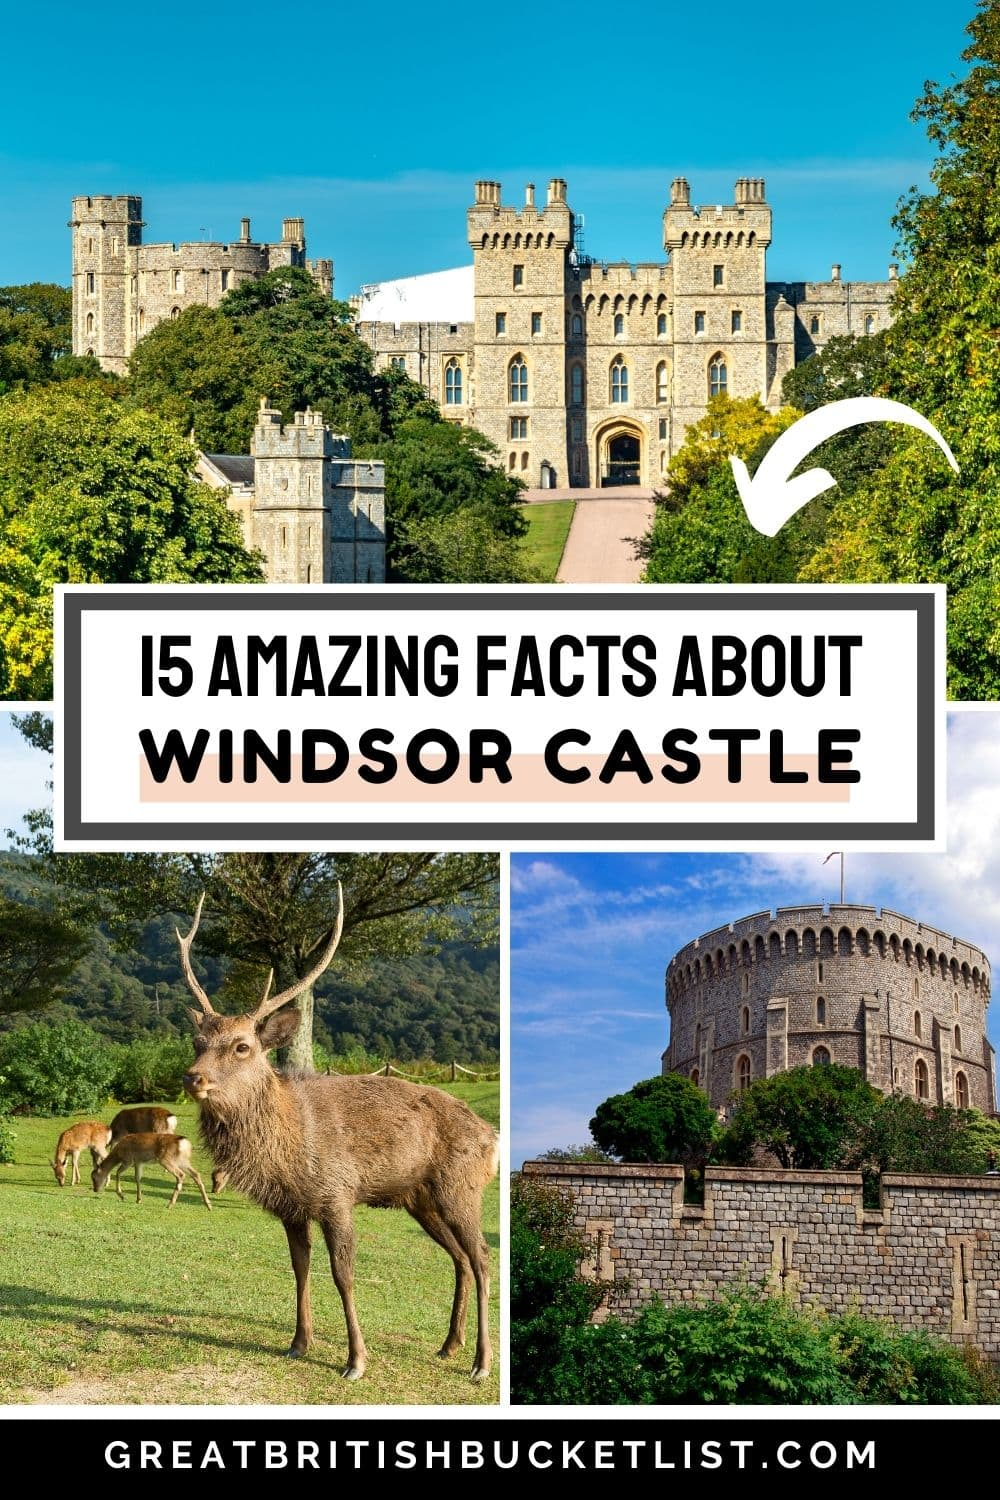 15 amazing facts about Windsor Castle